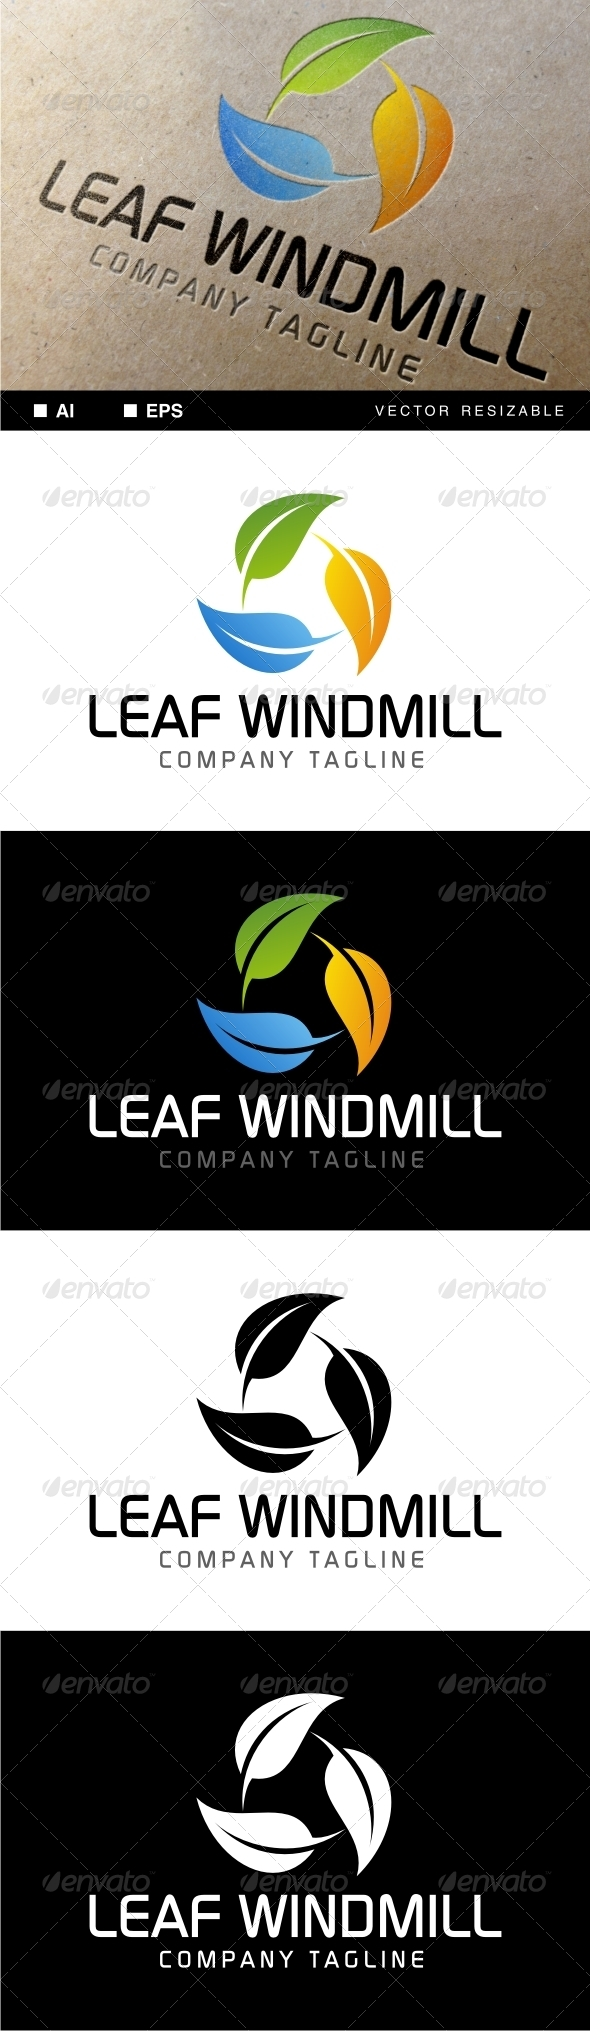 GraphicRiver Leaf Windmill Logo 7081664